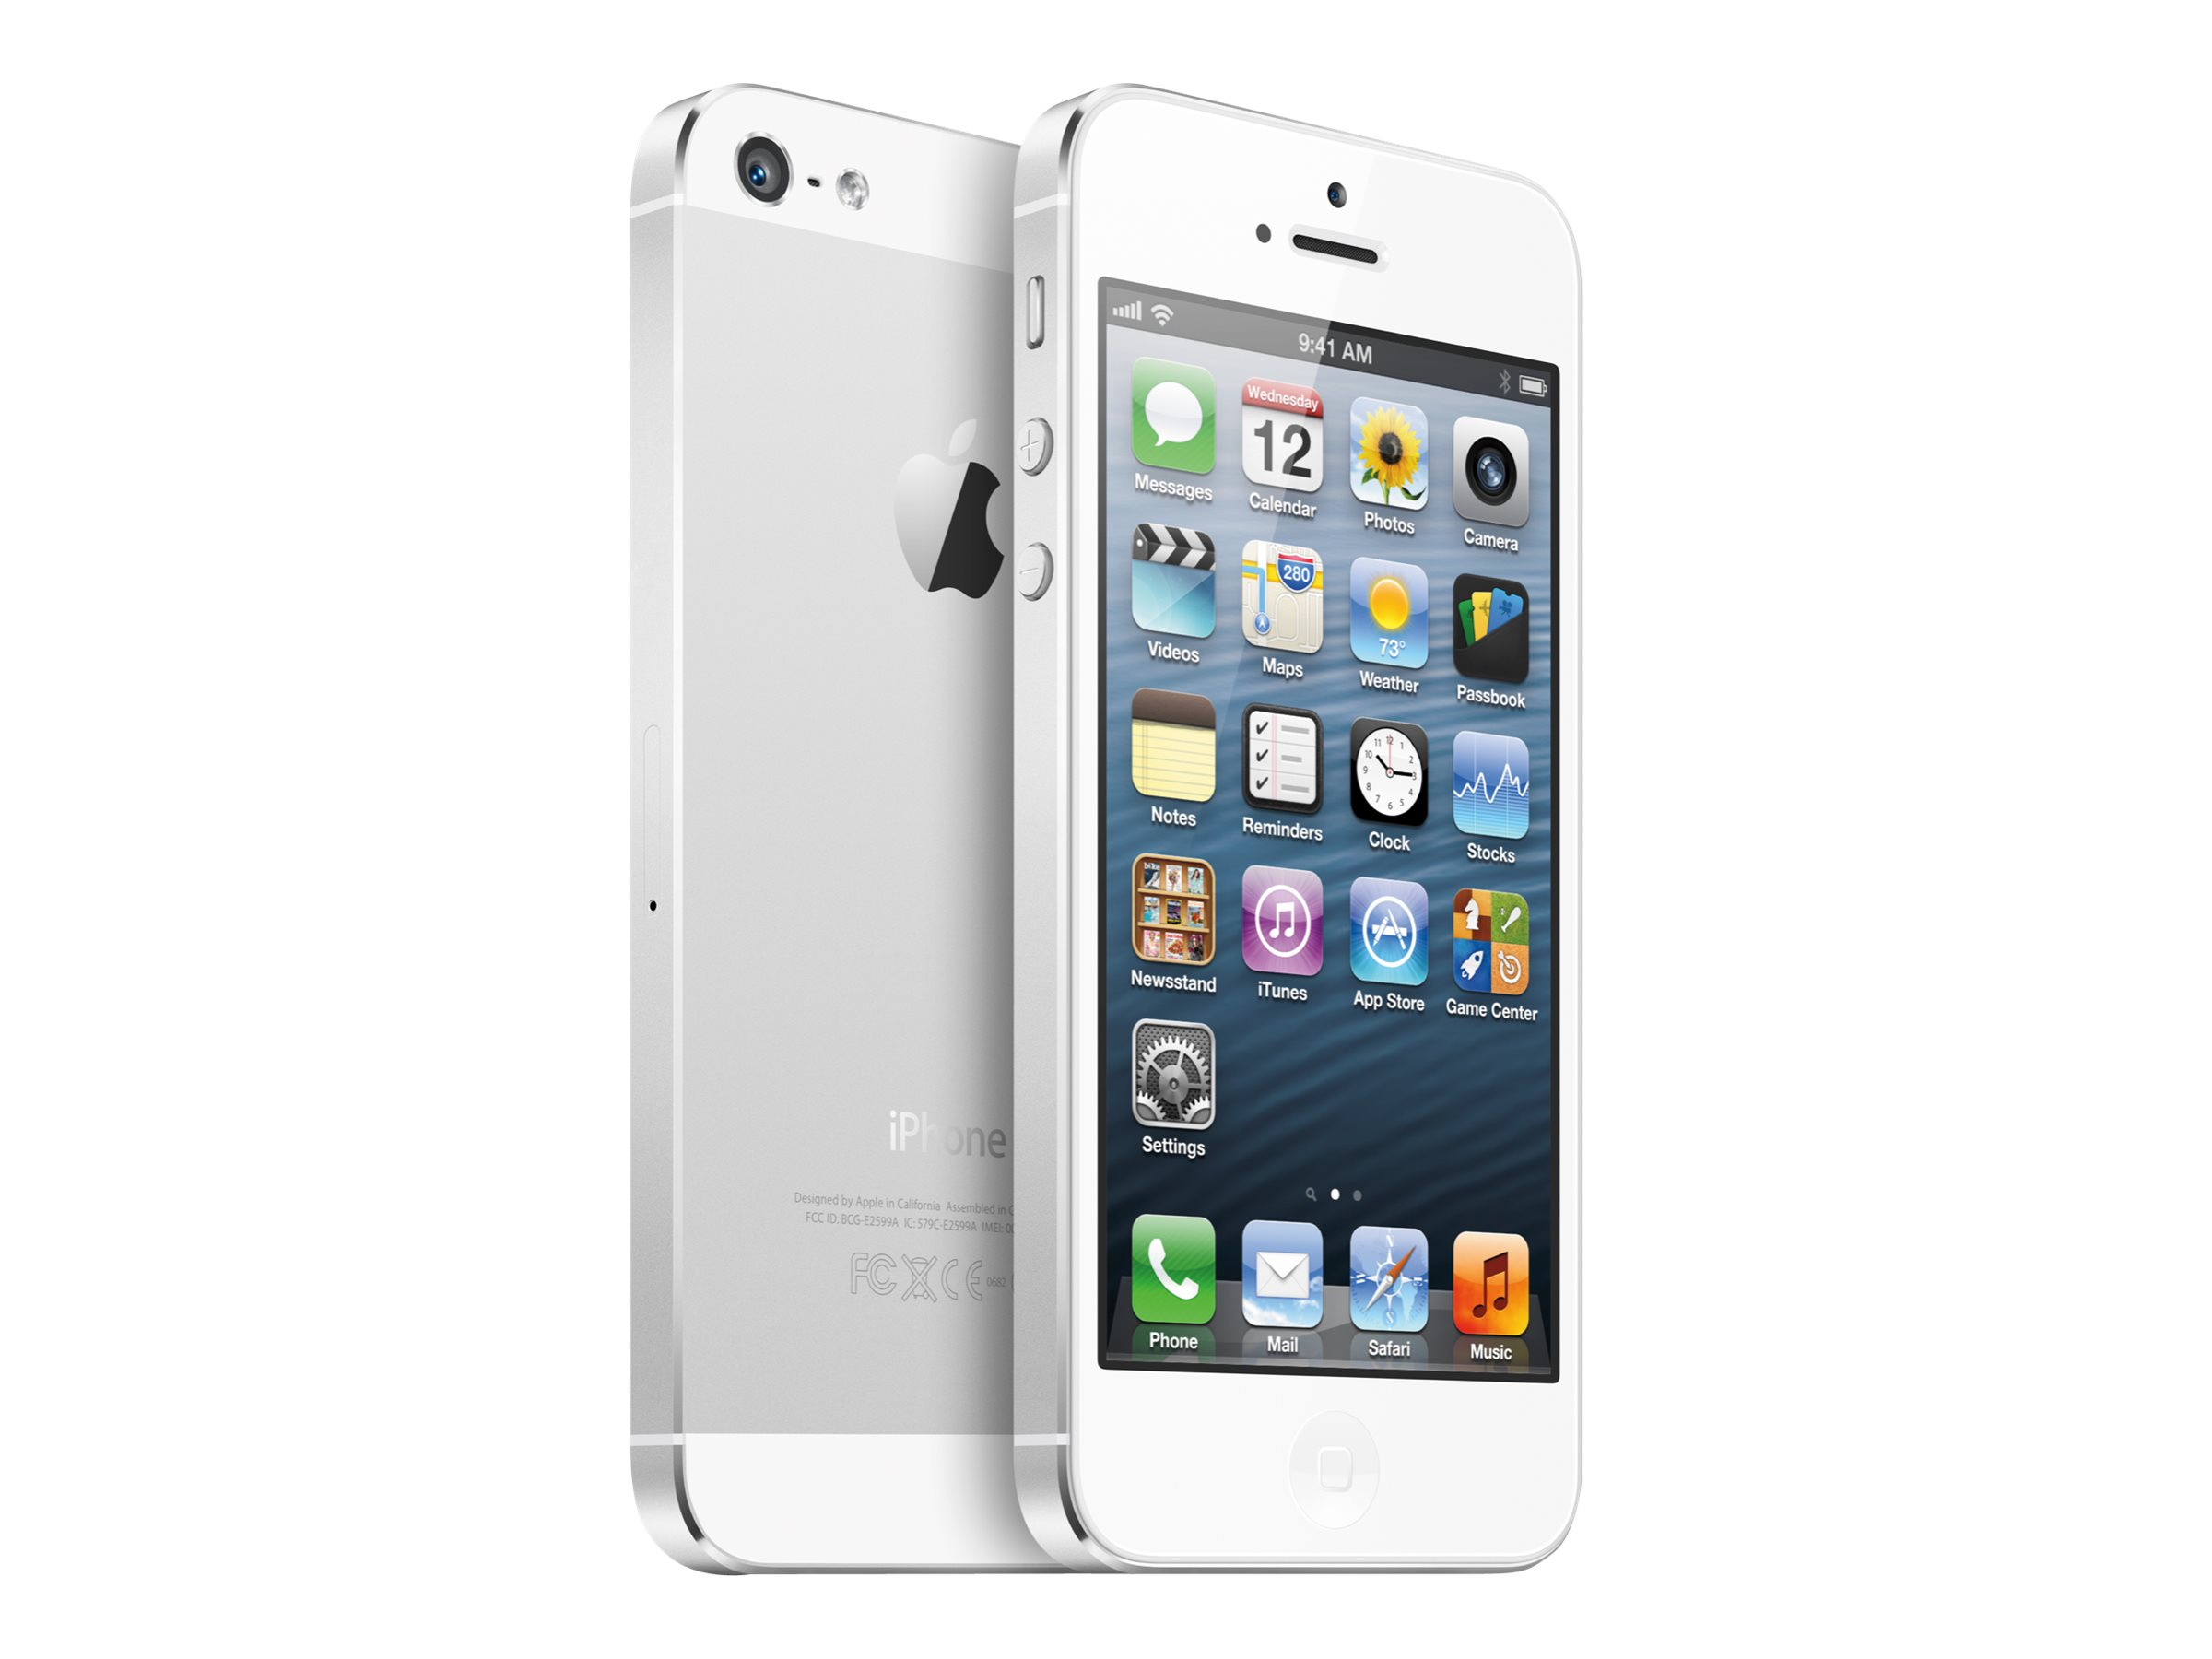 apple iphone 5 reconditionn blanc et argent 3g lte. Black Bedroom Furniture Sets. Home Design Ideas